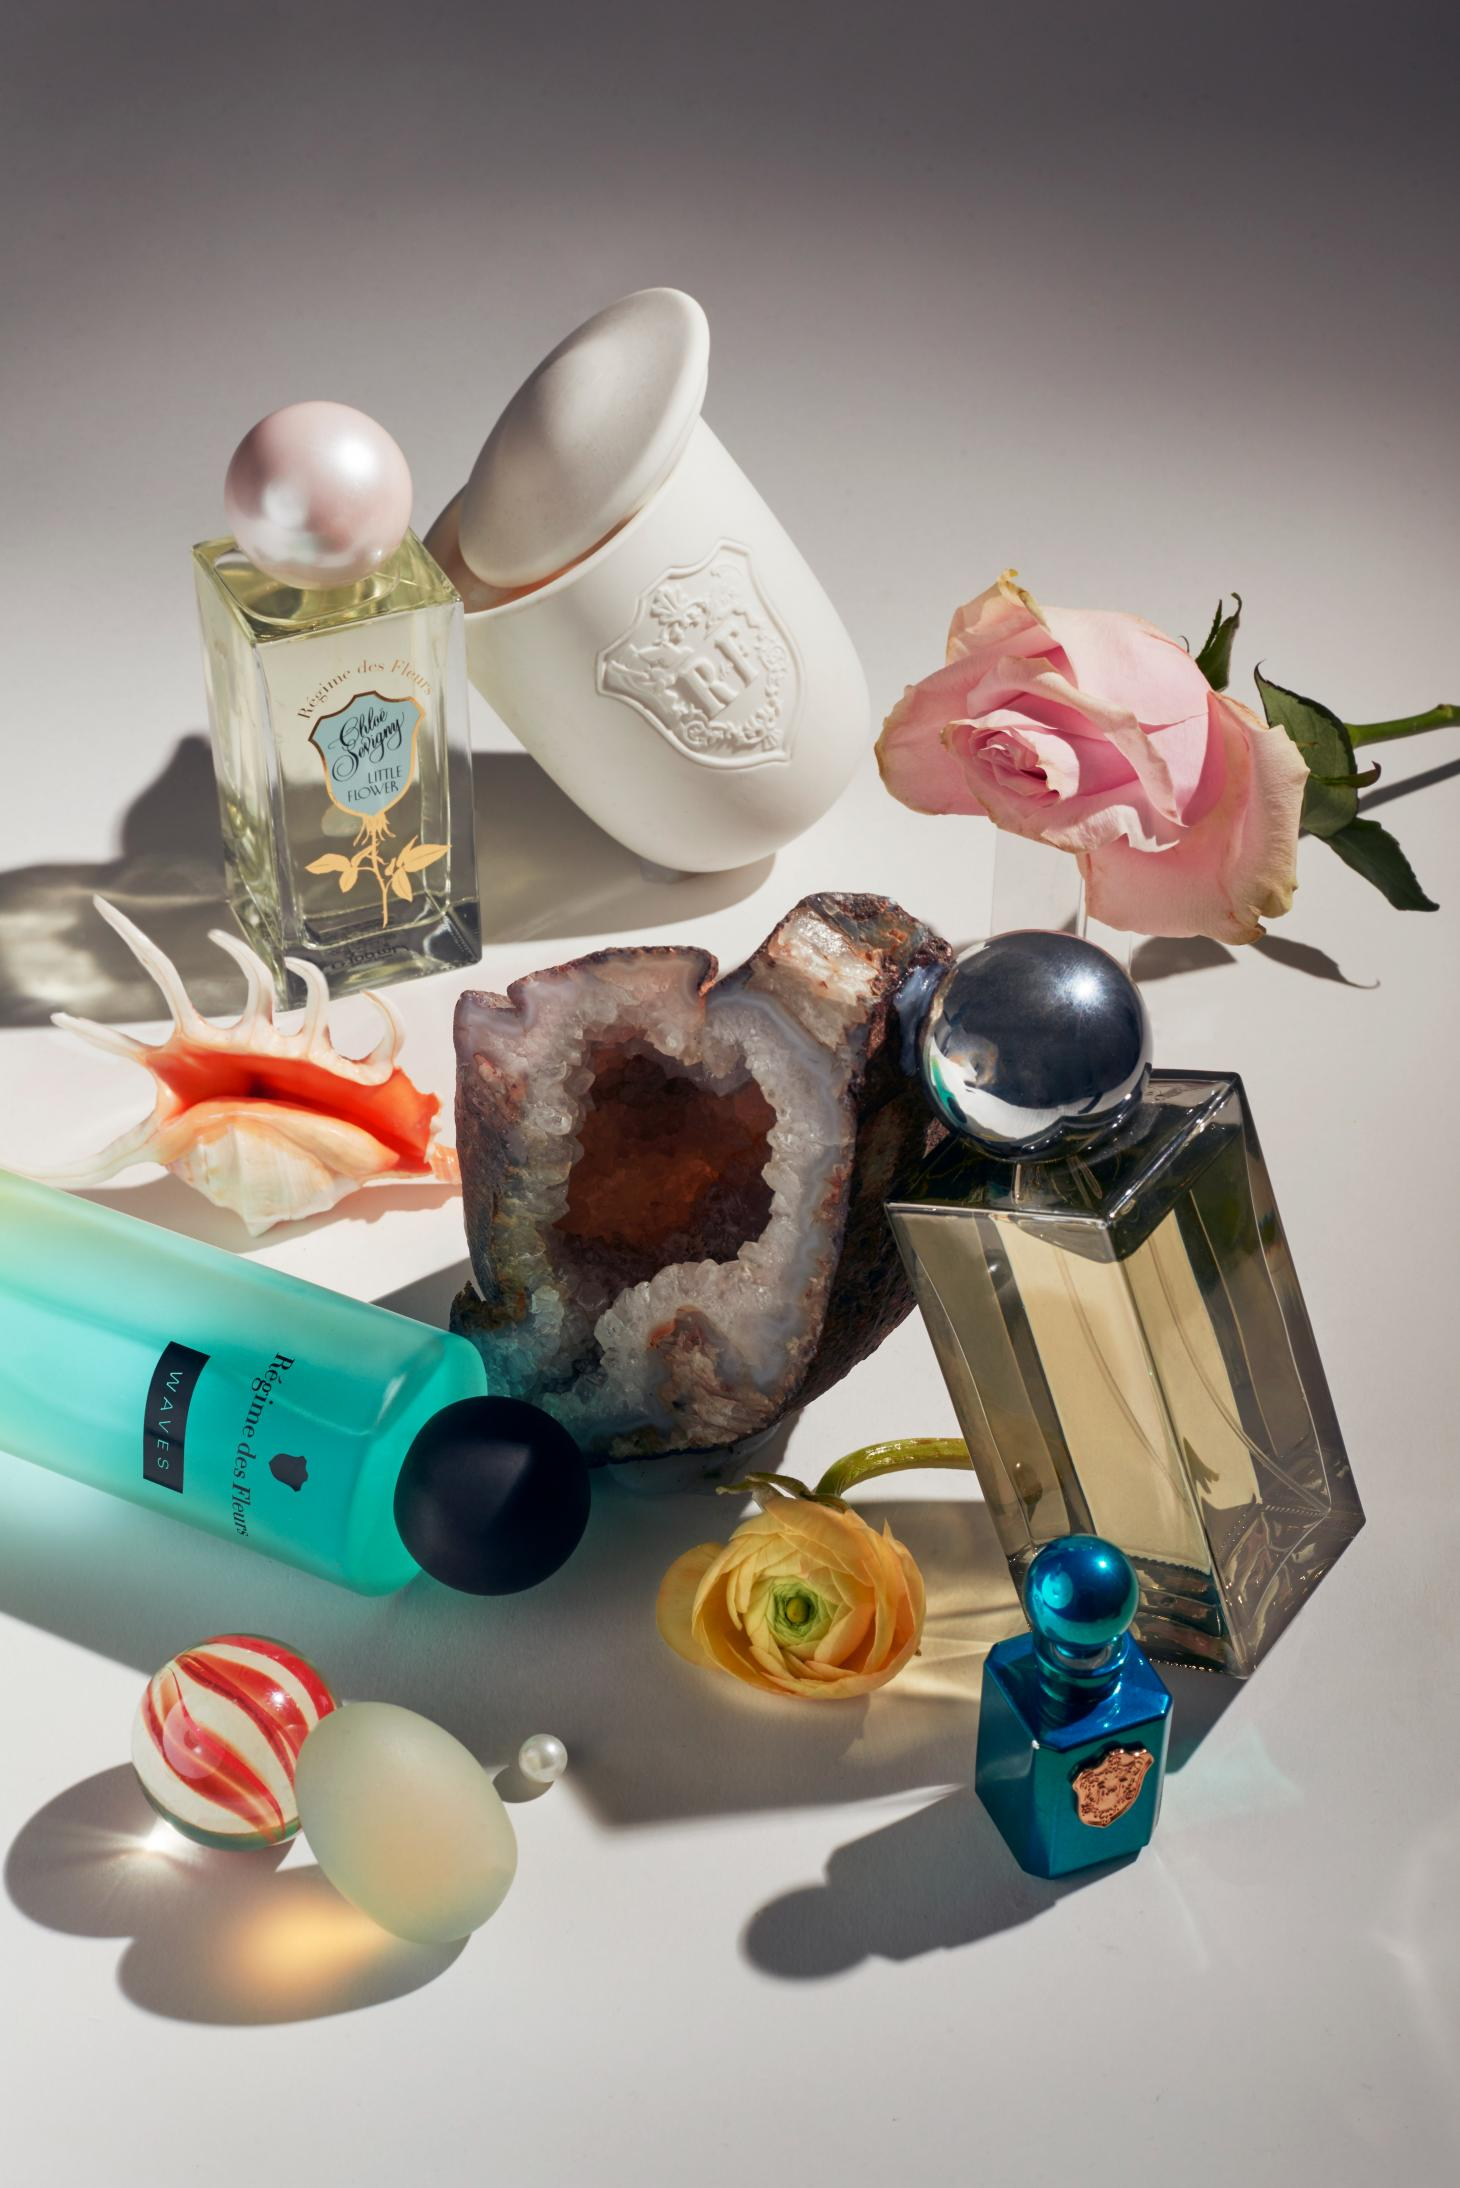 Régime des Fleurs perfume bottles including scent designed by chloe sevigny and Waves from the Personal/Space collection